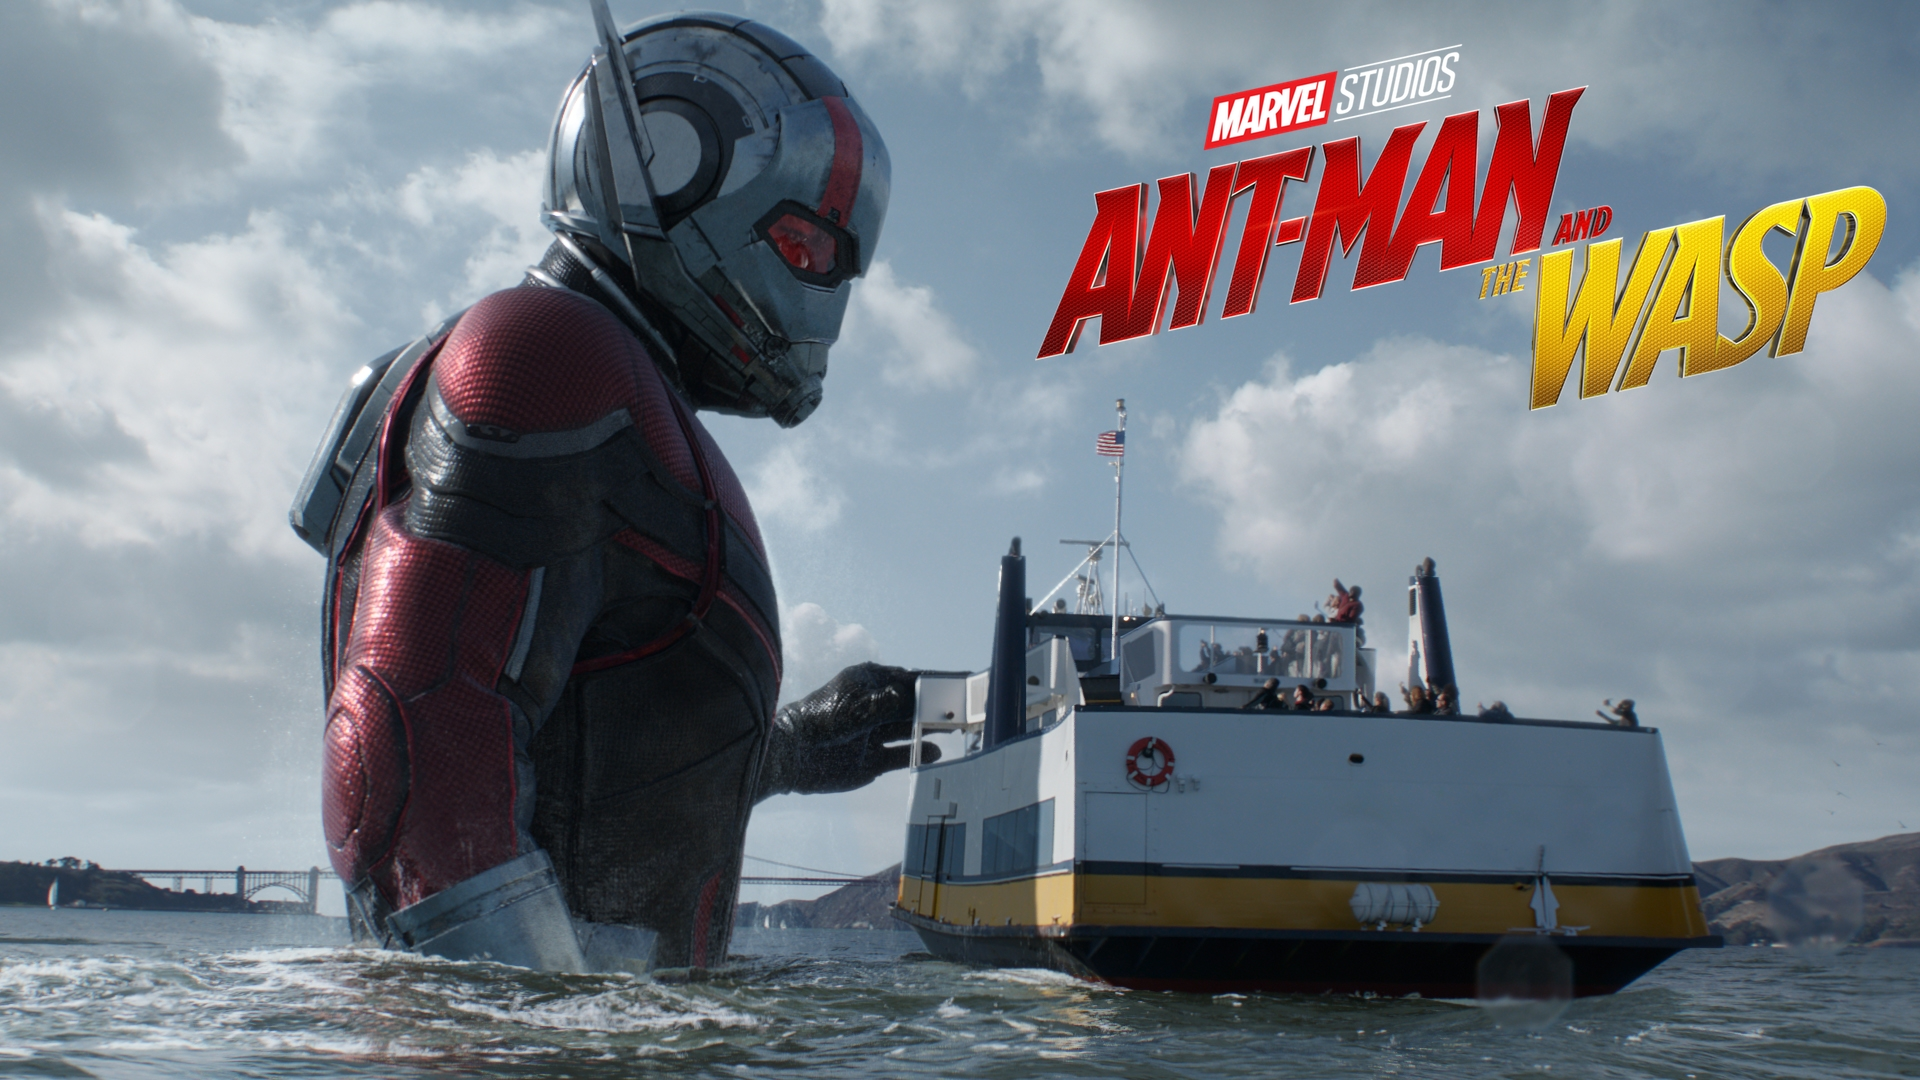 16 Hd Images From Ant Man And The Wasp Released By Marvel Studios